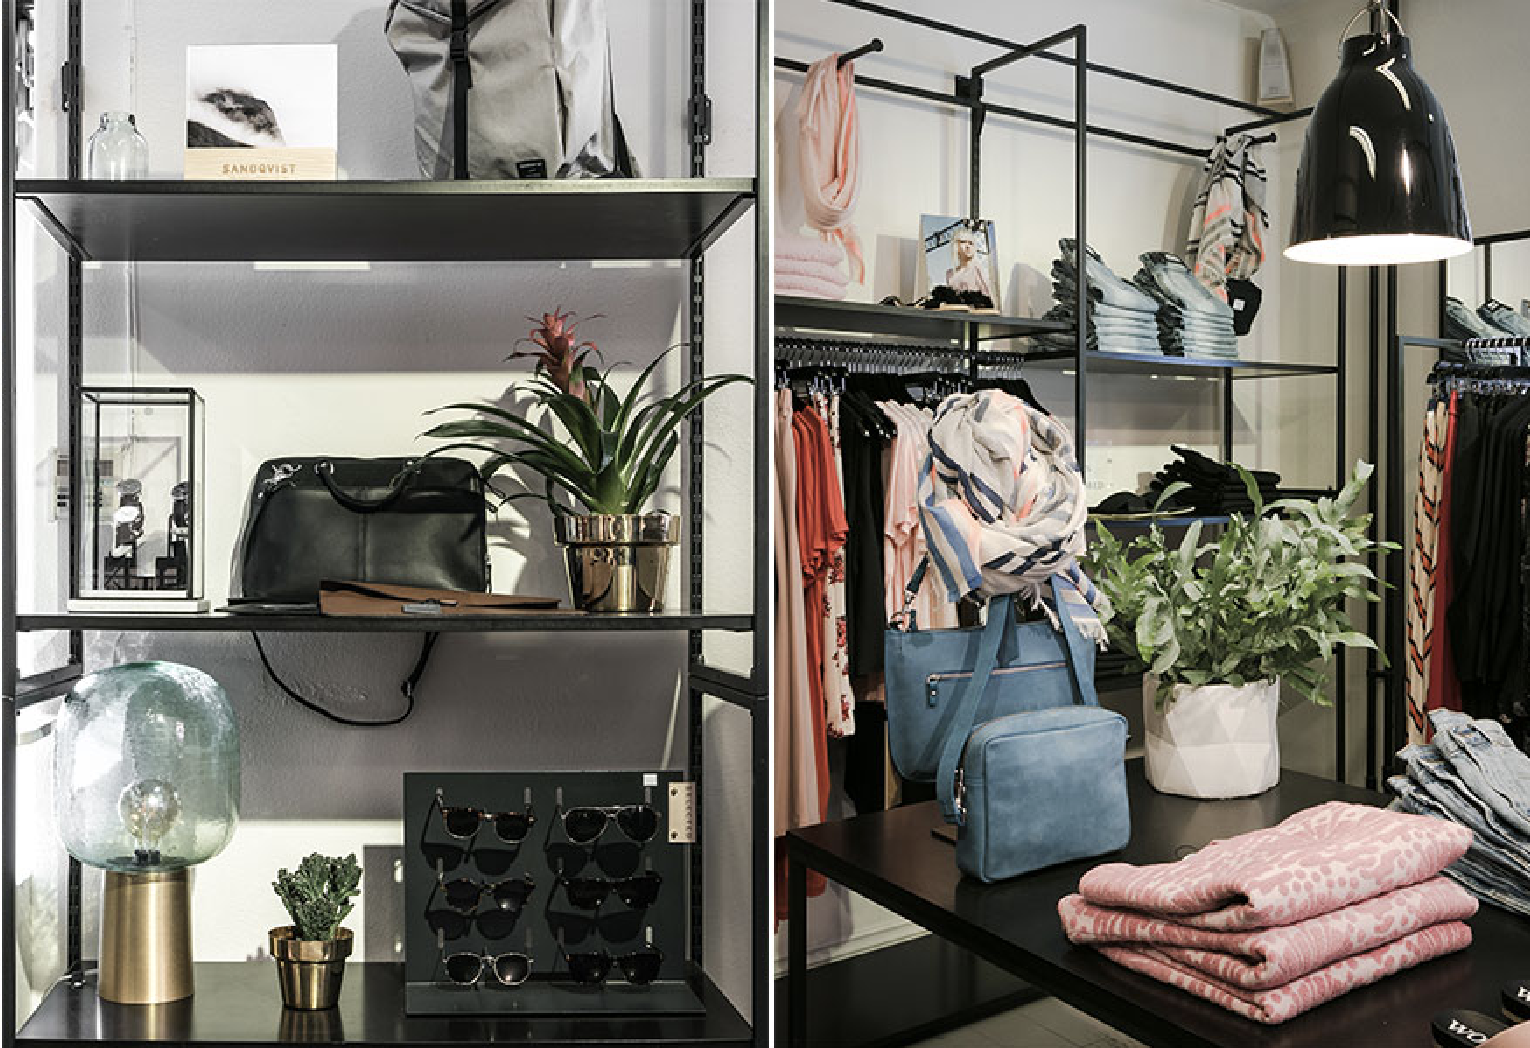 Stockholm - Plagg - With their 3 unique stores in Stockholm City we are so happy to be part of their offer of brands focusing on beautiful design and great quality. Assortment at Plagg:Currently you find all of our RETACH Canvas bag straps in their shop at Rörstrandsgatan 8.